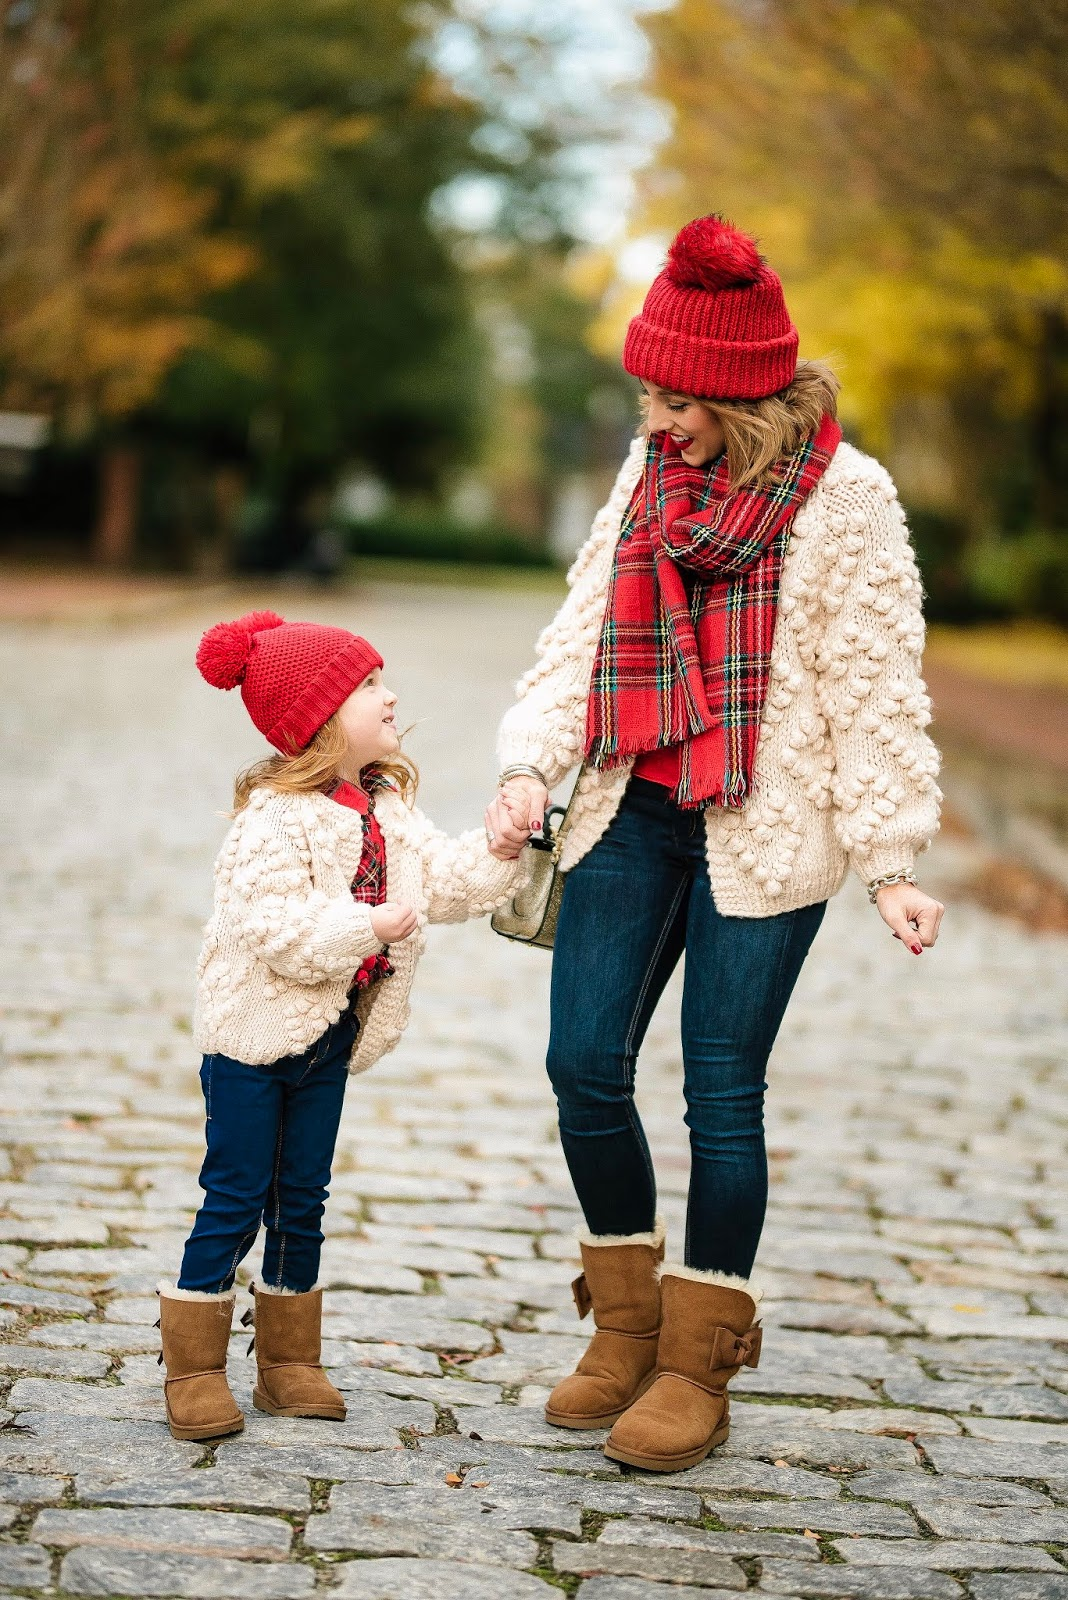 Mommy & Me in Heart Cardigans & Plaid - Something Delightful Blog